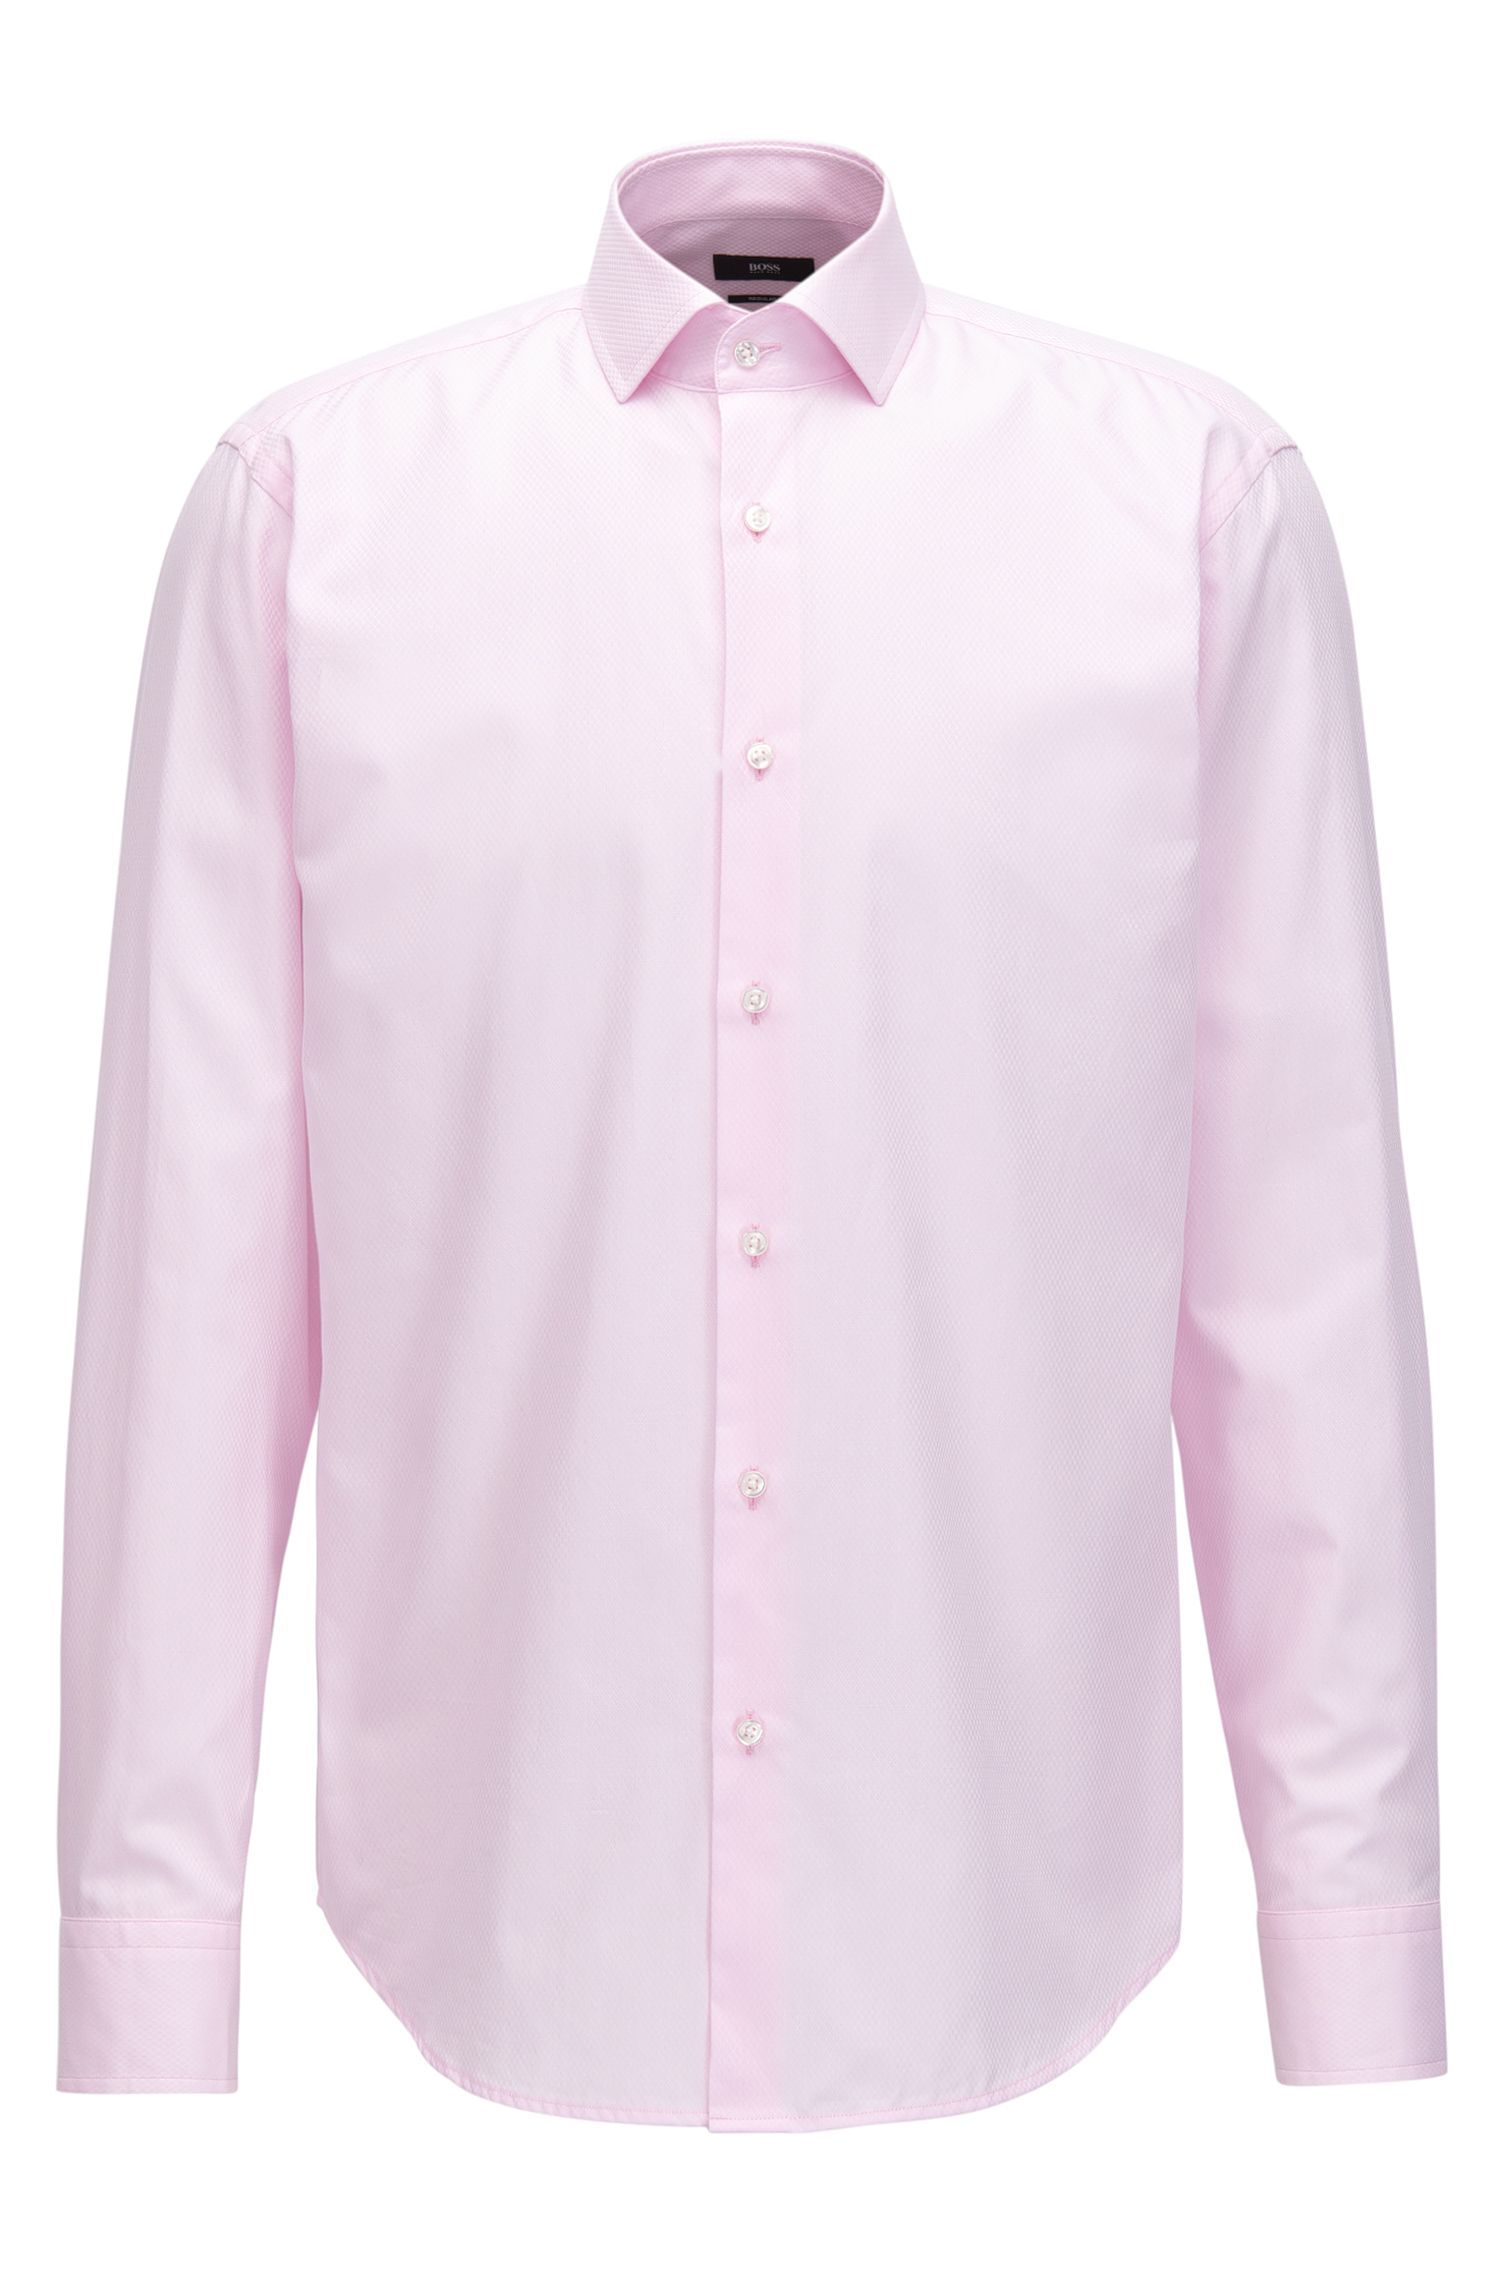 Regular-fit shirt in patterned cotton